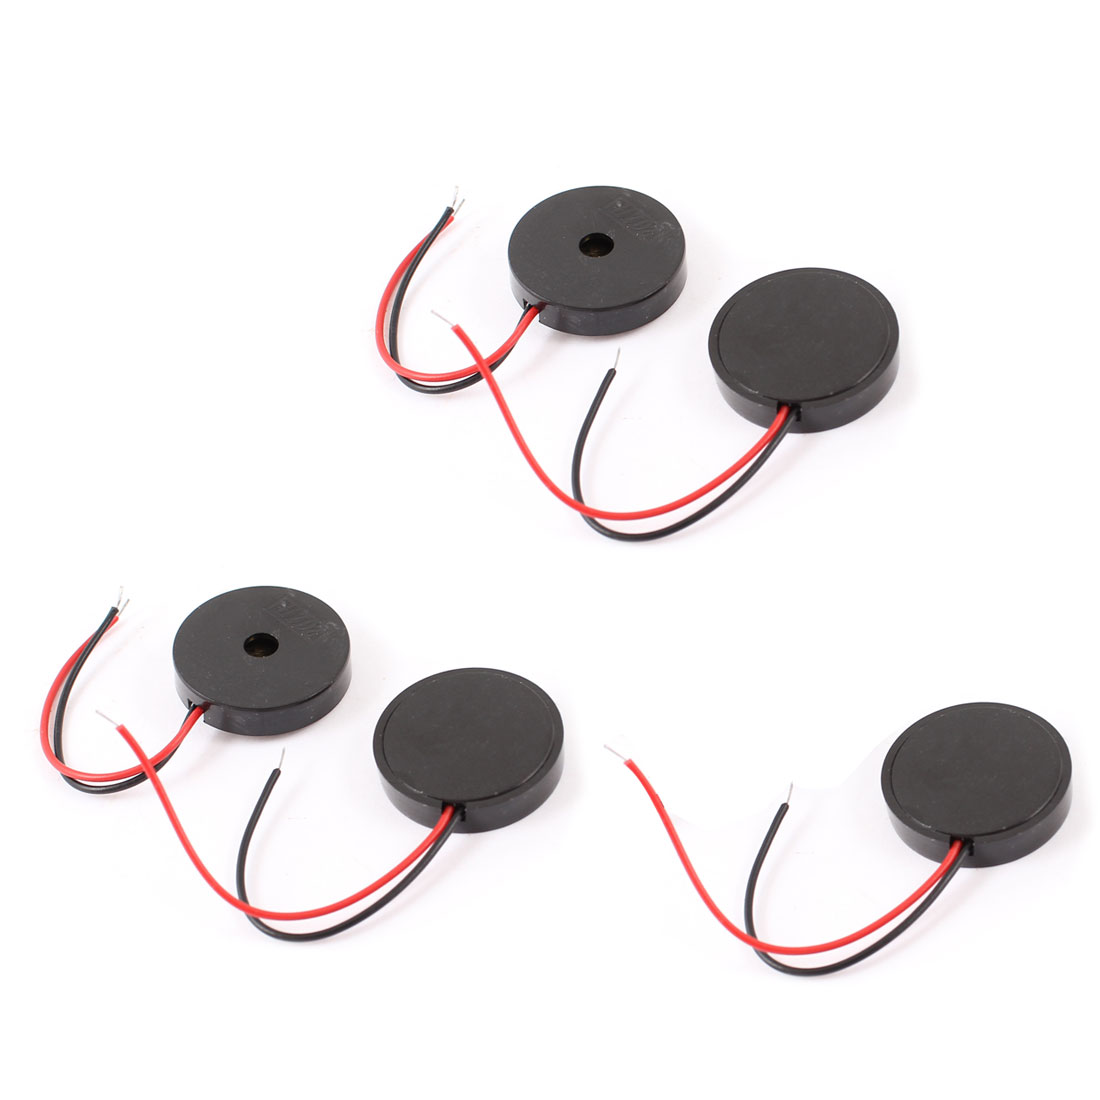 5 Pcs DC 2-28V 80dB Sound Electronic Passive Buzzer Alarm Black 22 x 4.5mm